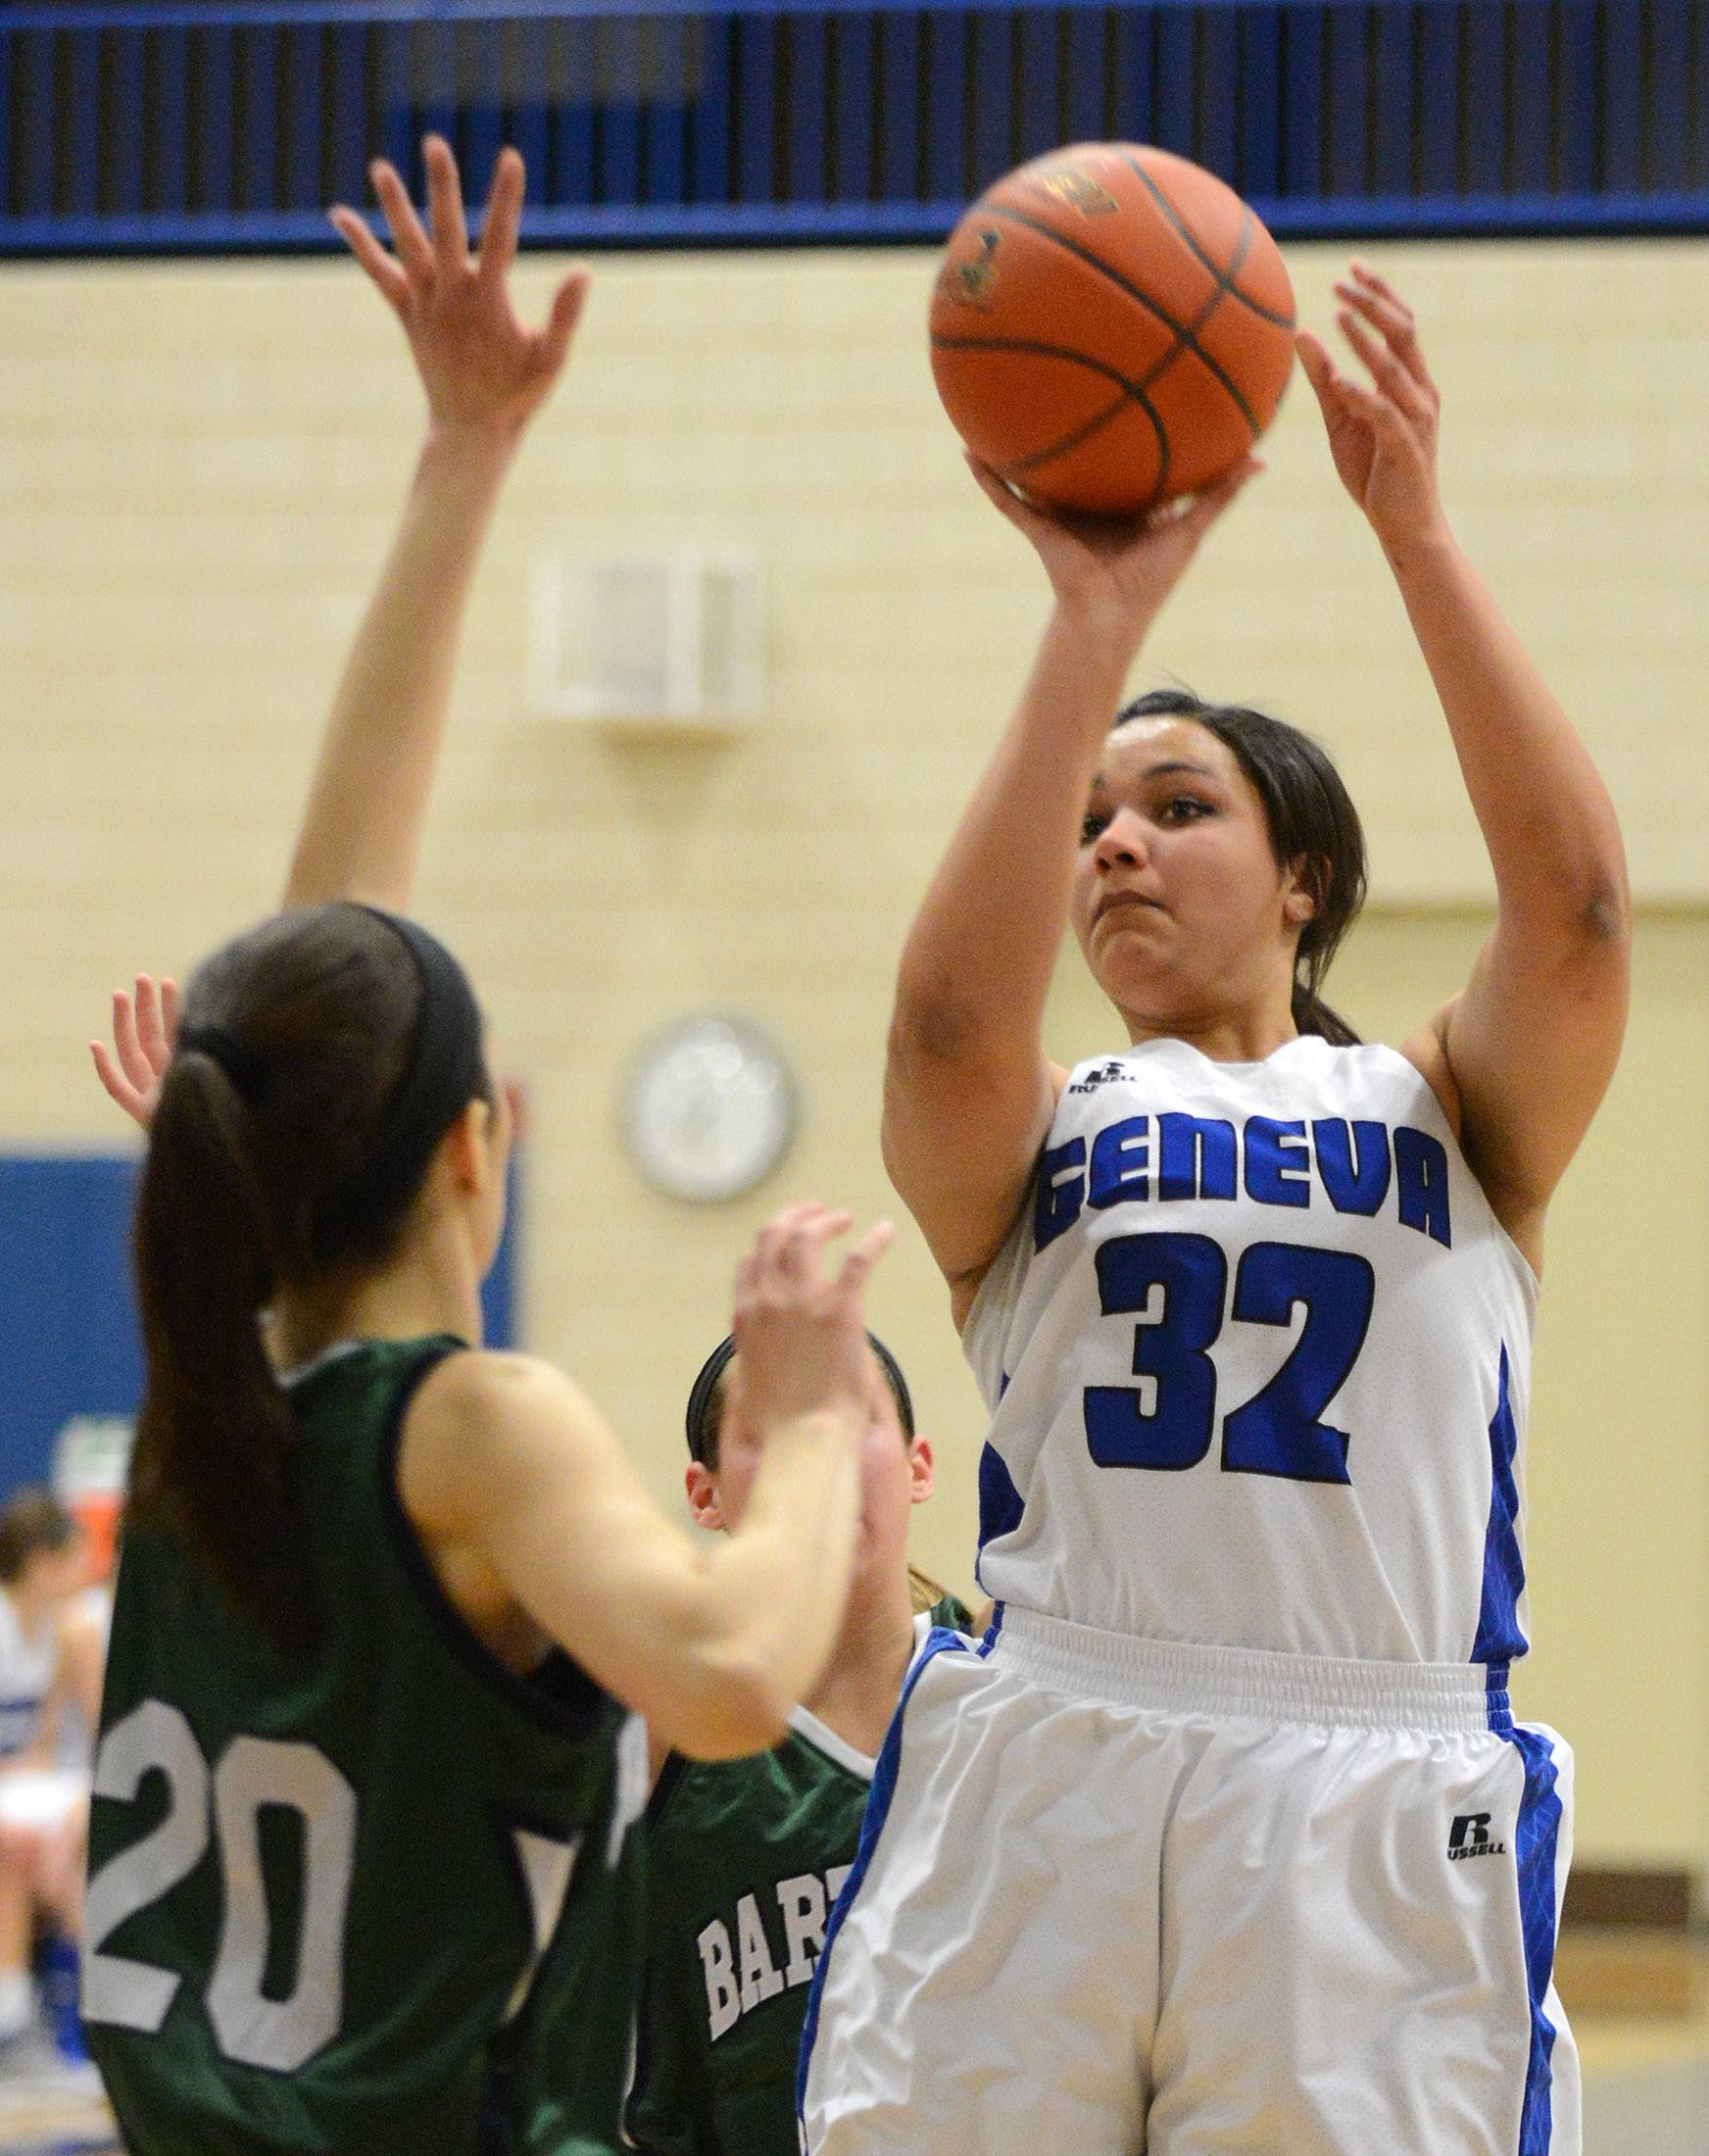 Geneva's Sidney Santos (32) shoots and scores over Bartlett's Elizabeth Arco (20) during Thursday's game in Geneva.